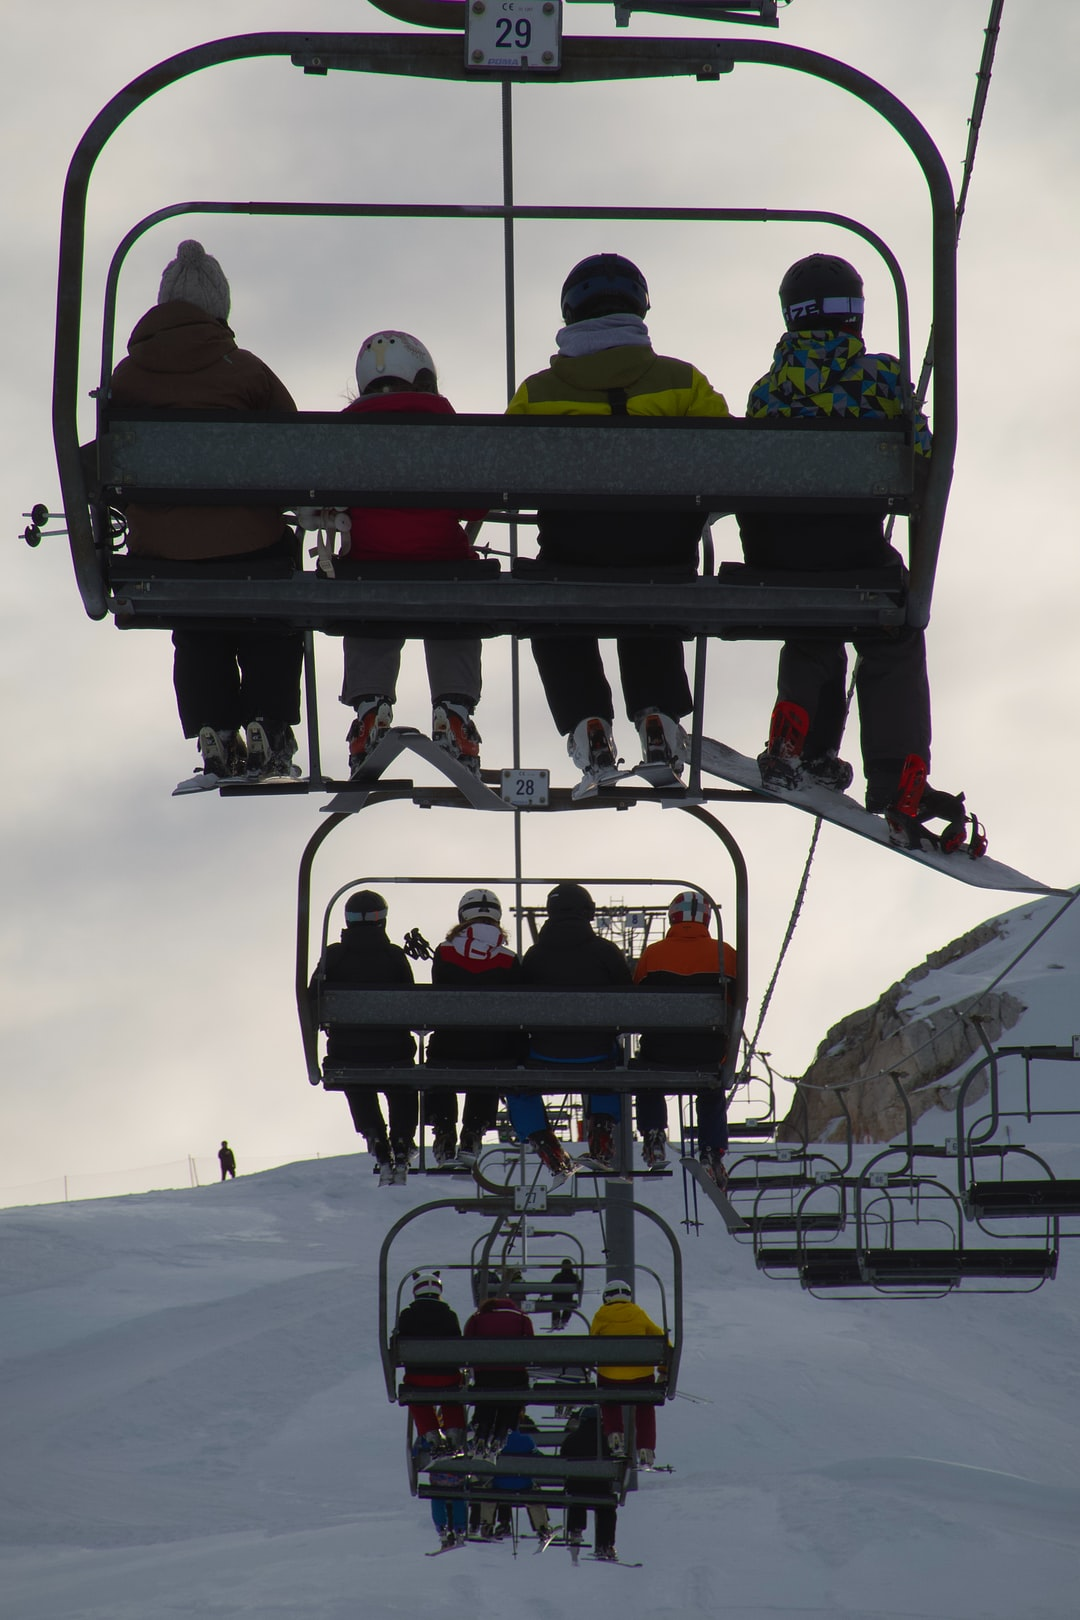 A usual view of a chairlift at peak times, everyone is on one side.